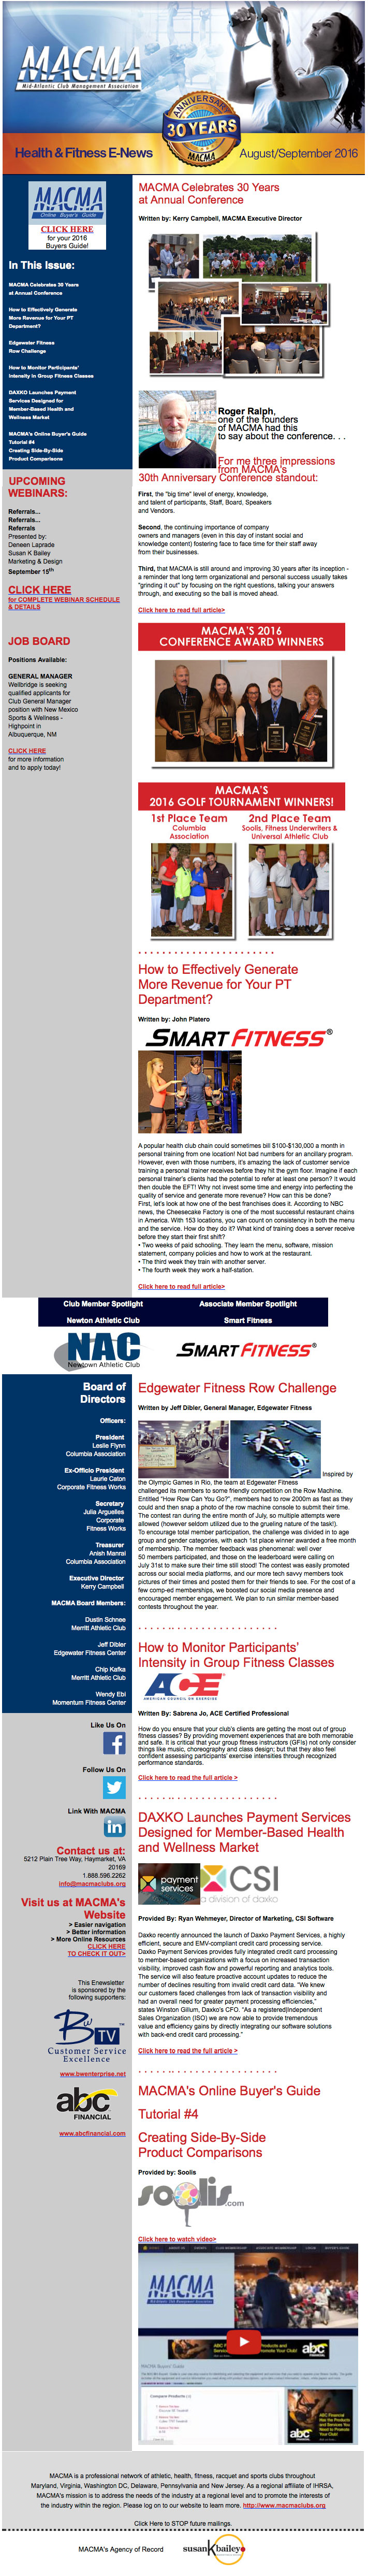 macmc_newsletter